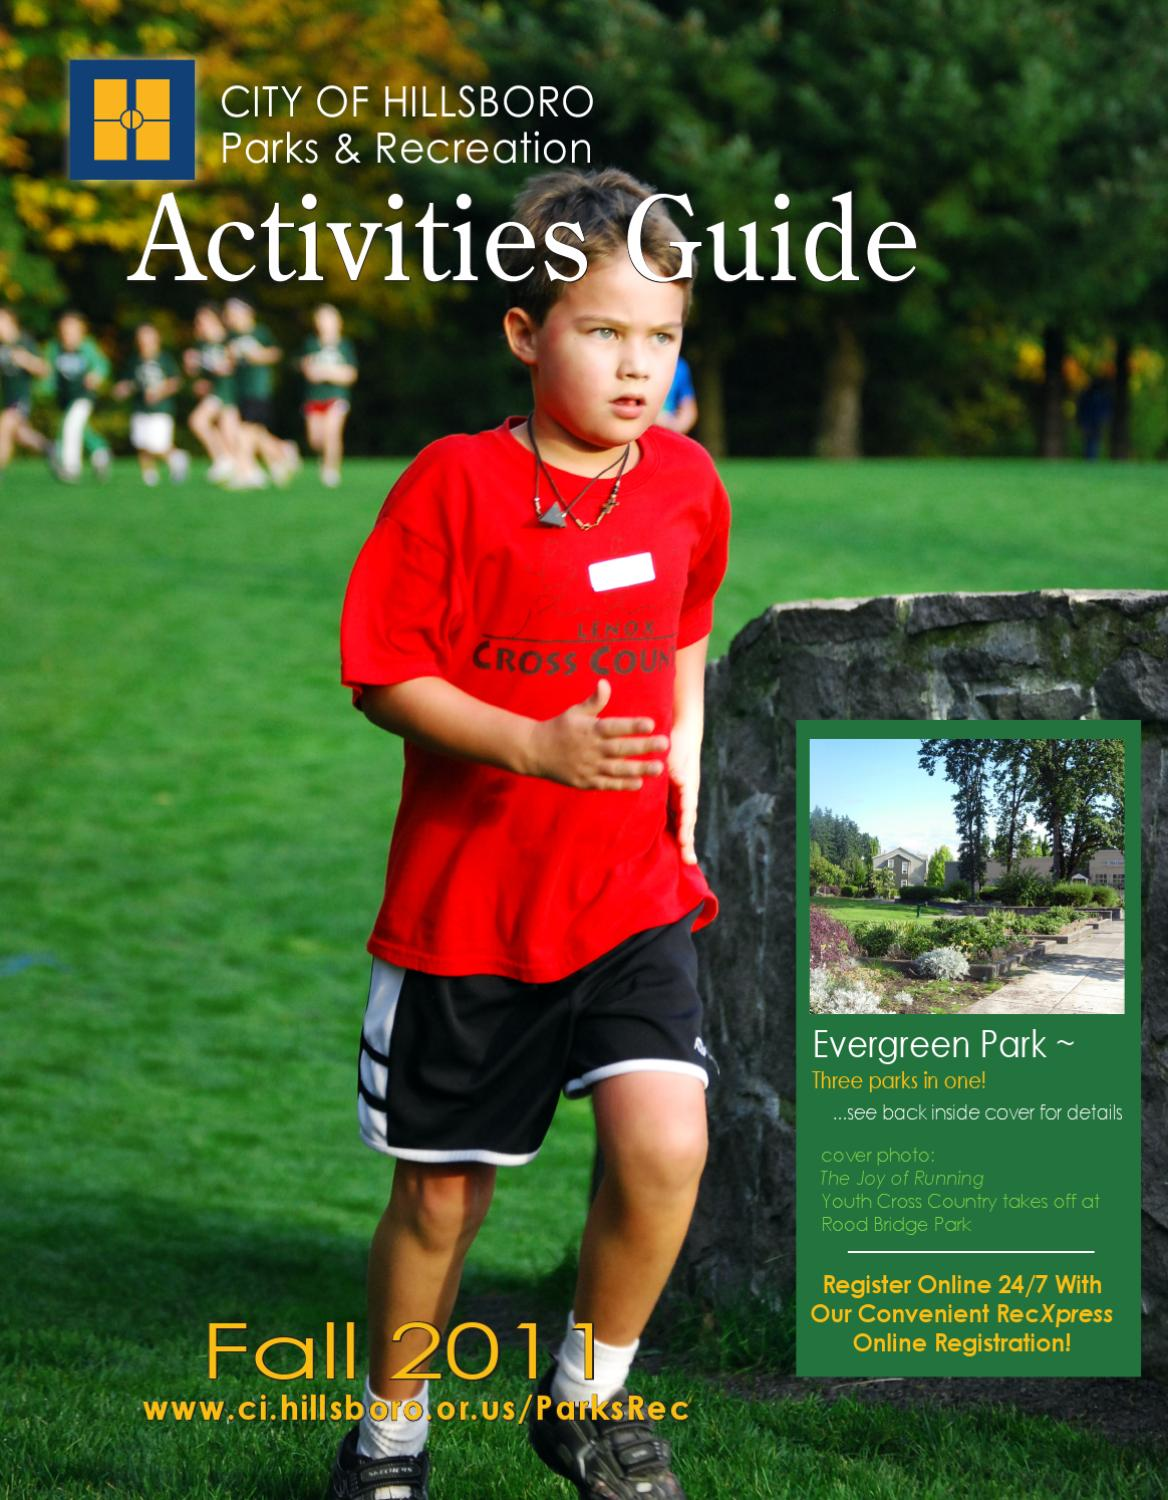 Hillsboro Parks & Recreation 2011 Fall Activities Guide by